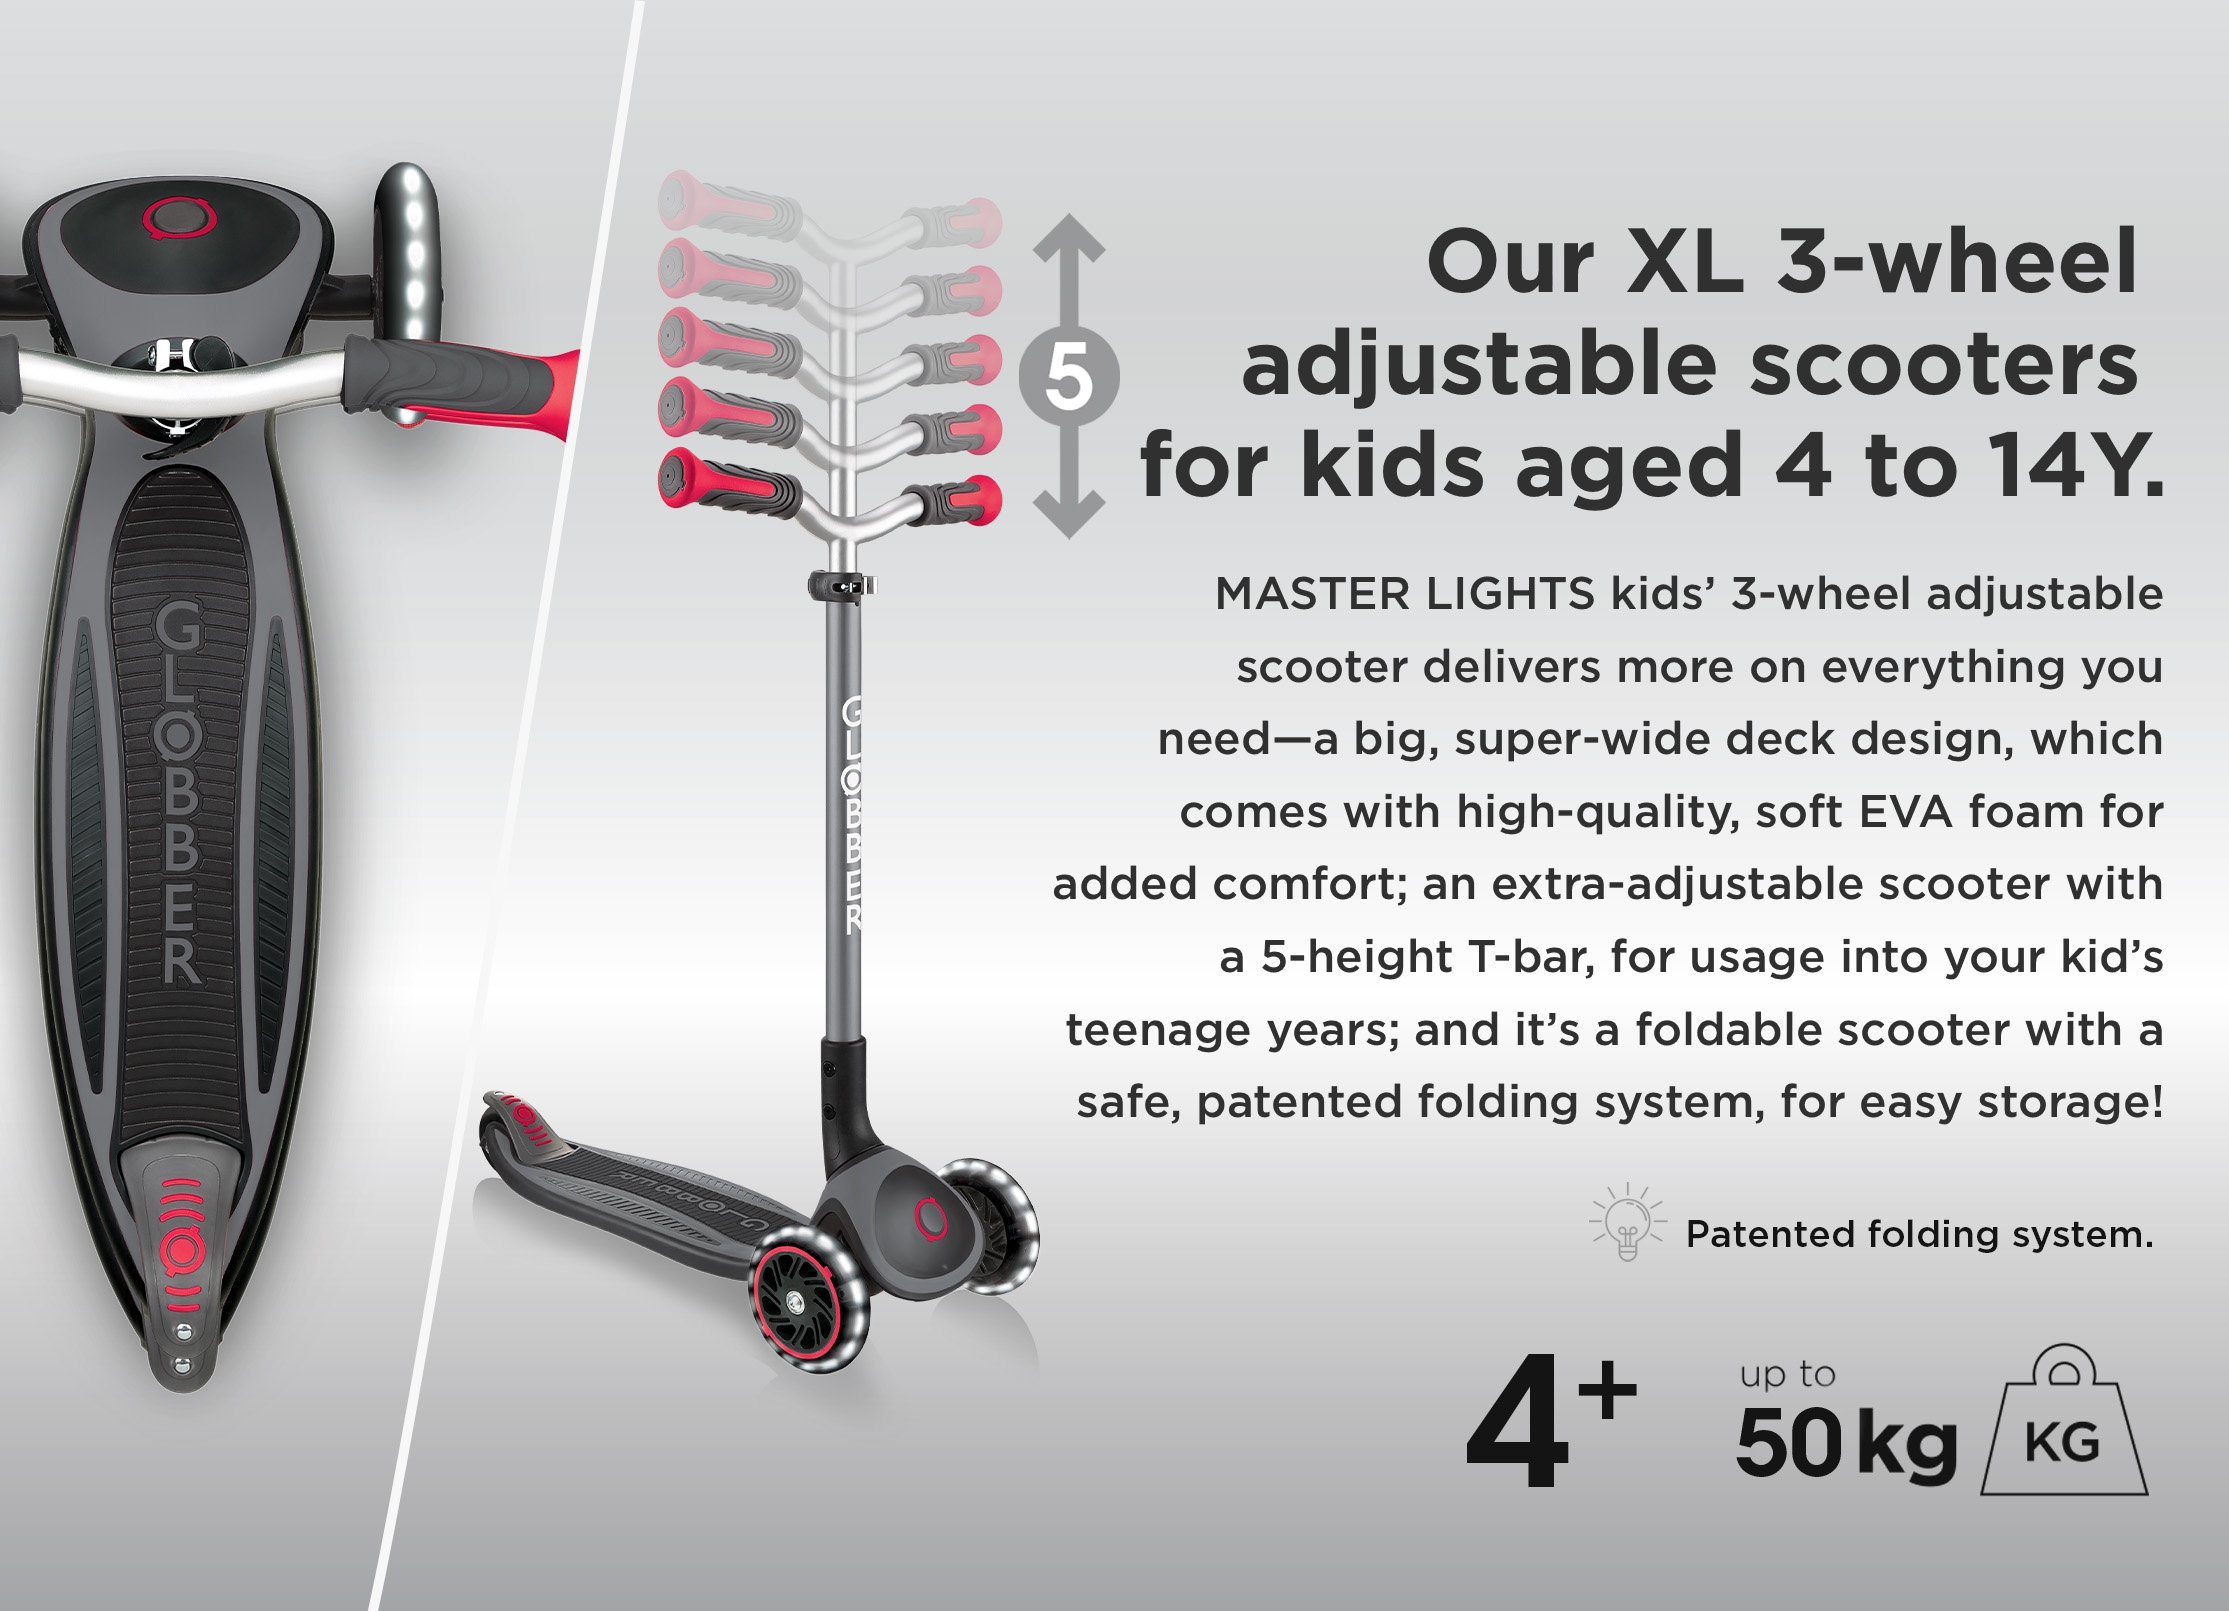 Our XL 3-wheel adjustable scooters for kids aged 4 to 14Y. MASTER LIGHTS kids' 3-wheel adjustable scooter delivers more on everything you need—a big, super-wide deck design, which comes with high-quality, soft EVA foam for added comfort; an extra adjustable scooter with a 5-height T-bar, for usage into your kid's teenage years; and it's a foldable scooter with a safe, patented folding system, for easy storage!